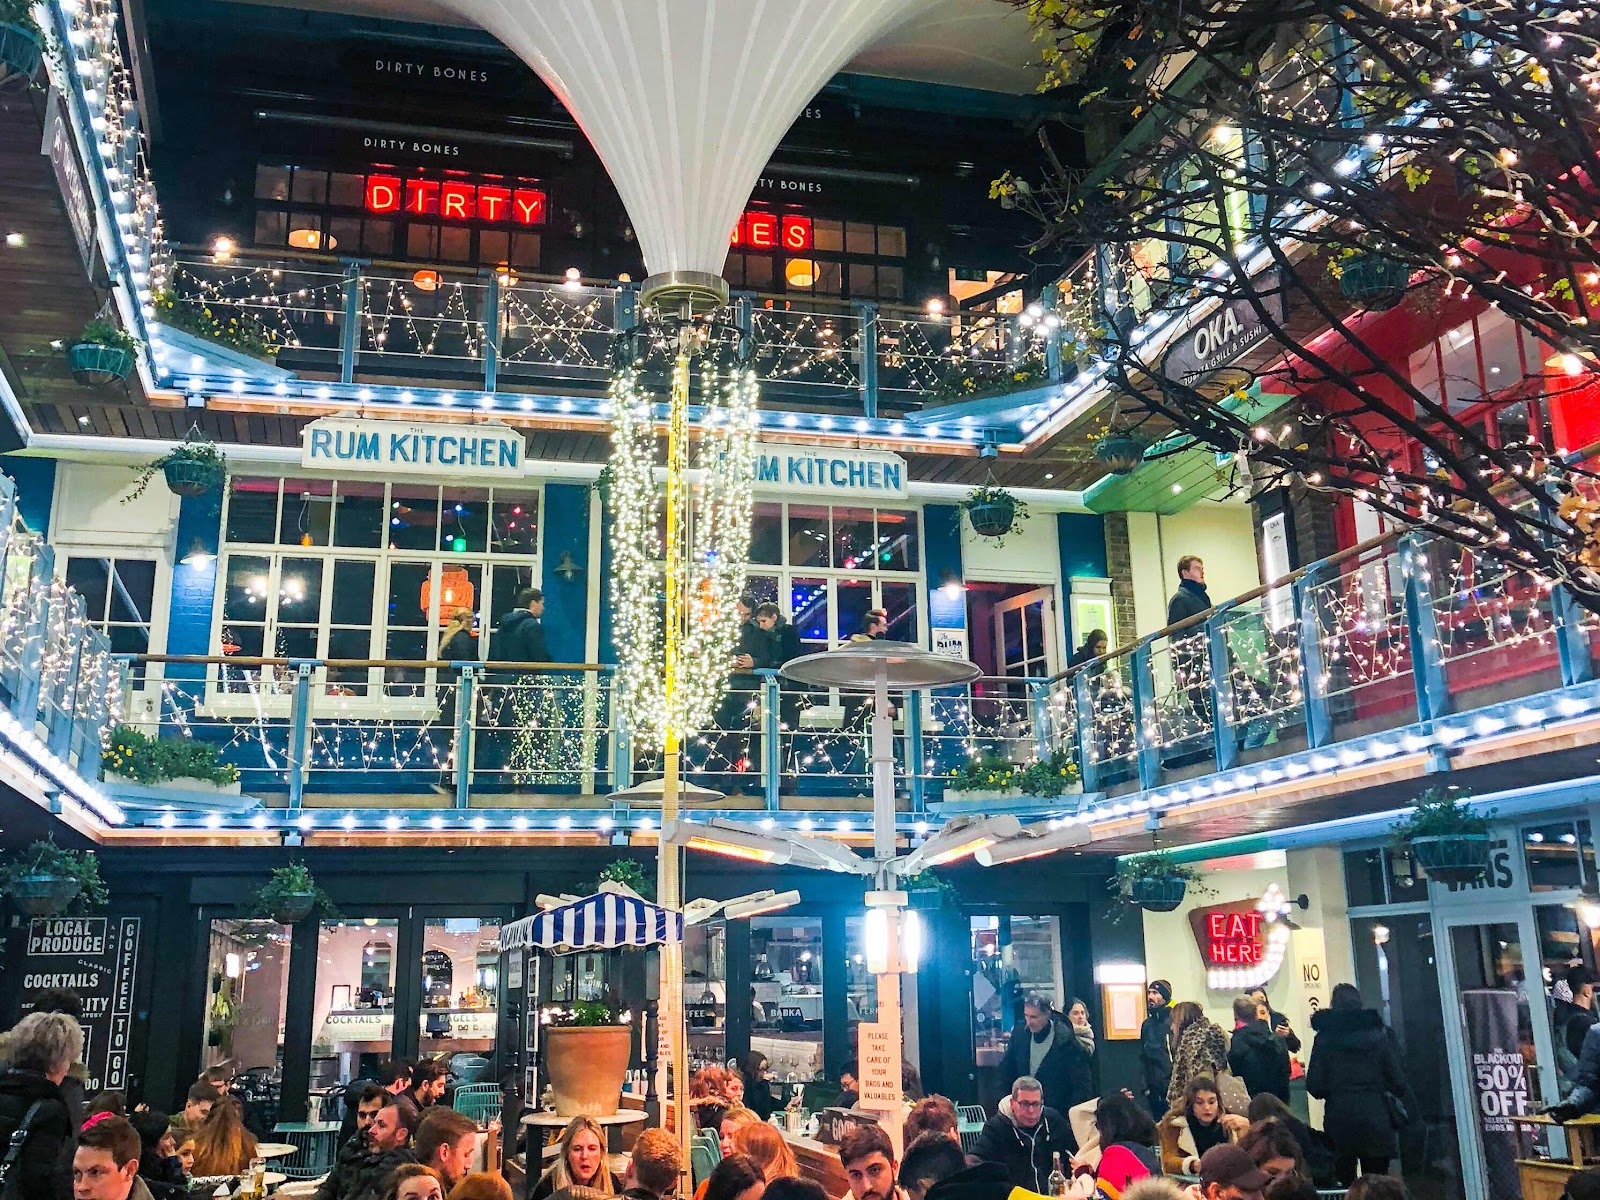 london-lifestyle-blog-top-10-things-to-do-in-soho-london-kingly-court-food